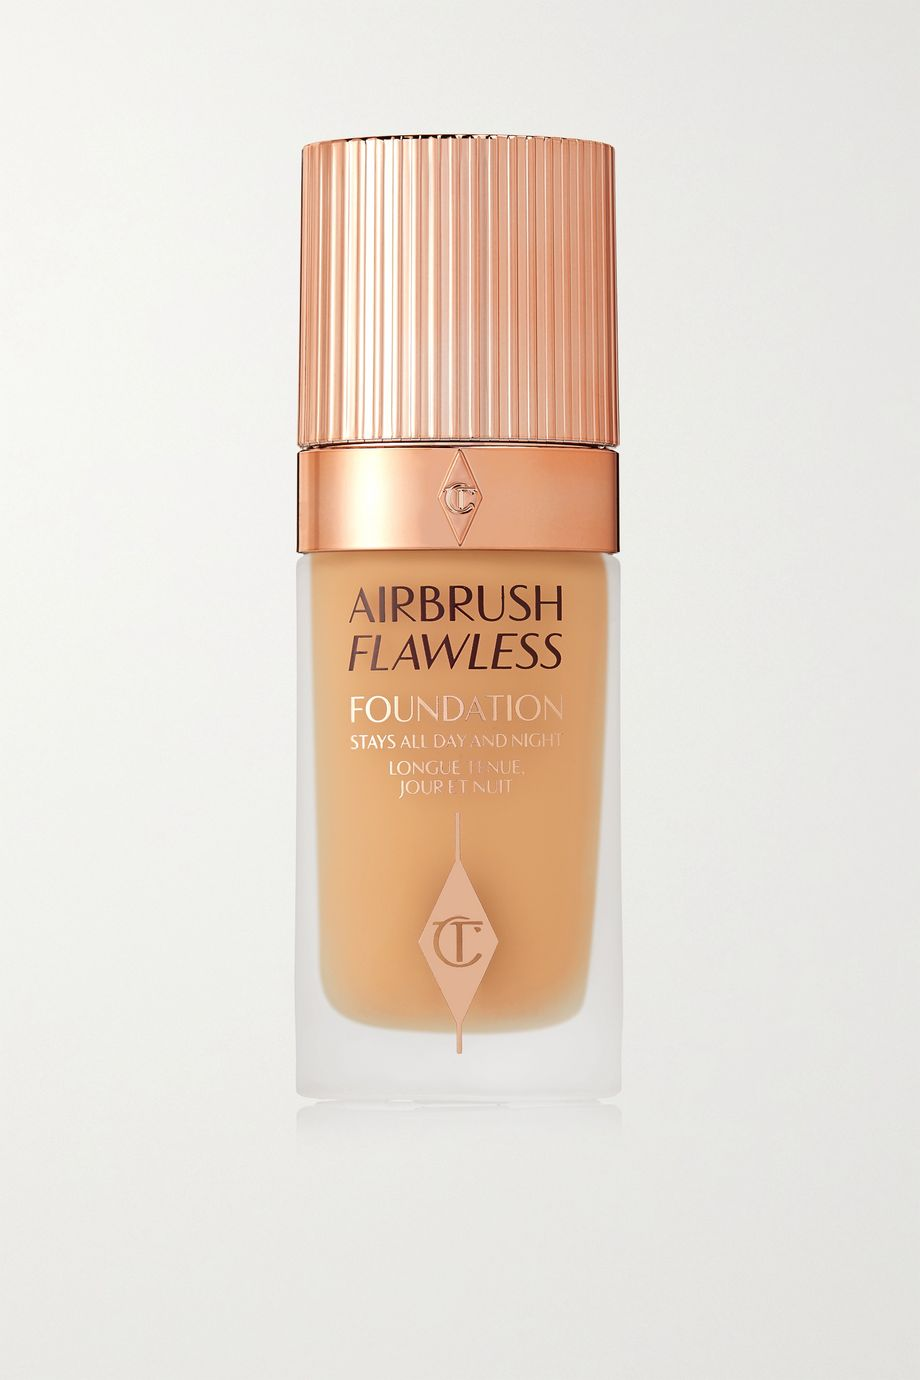 Charlotte Tilbury Airbrush Flawless Foundation – 5.5 Warm, 30 ml – Foundation